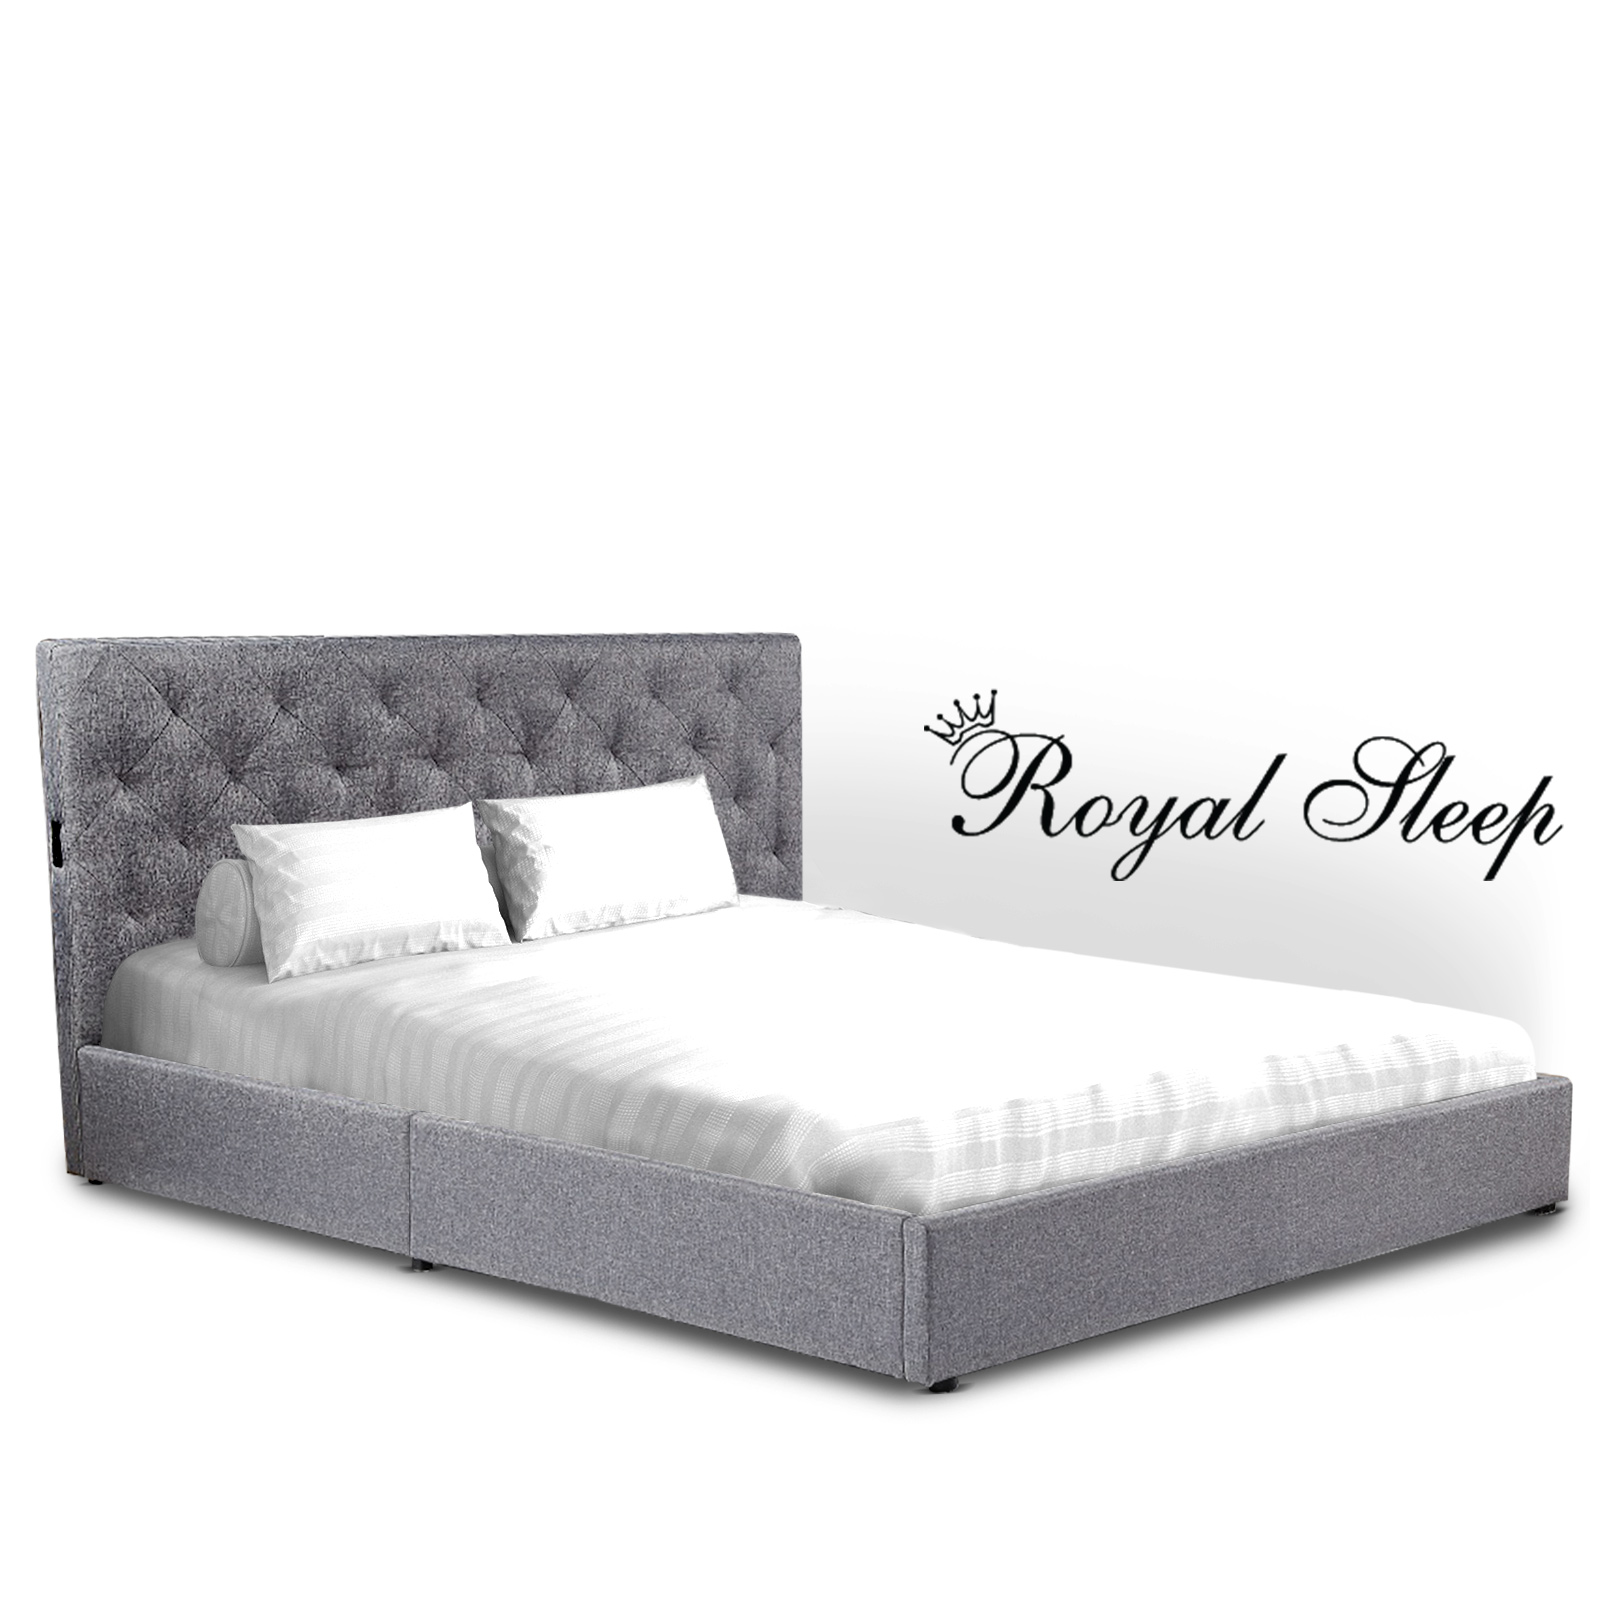 Royal Sleep Queen Bed Frame Gas Lift Platform Base Mattress Fabric Piuma Grey